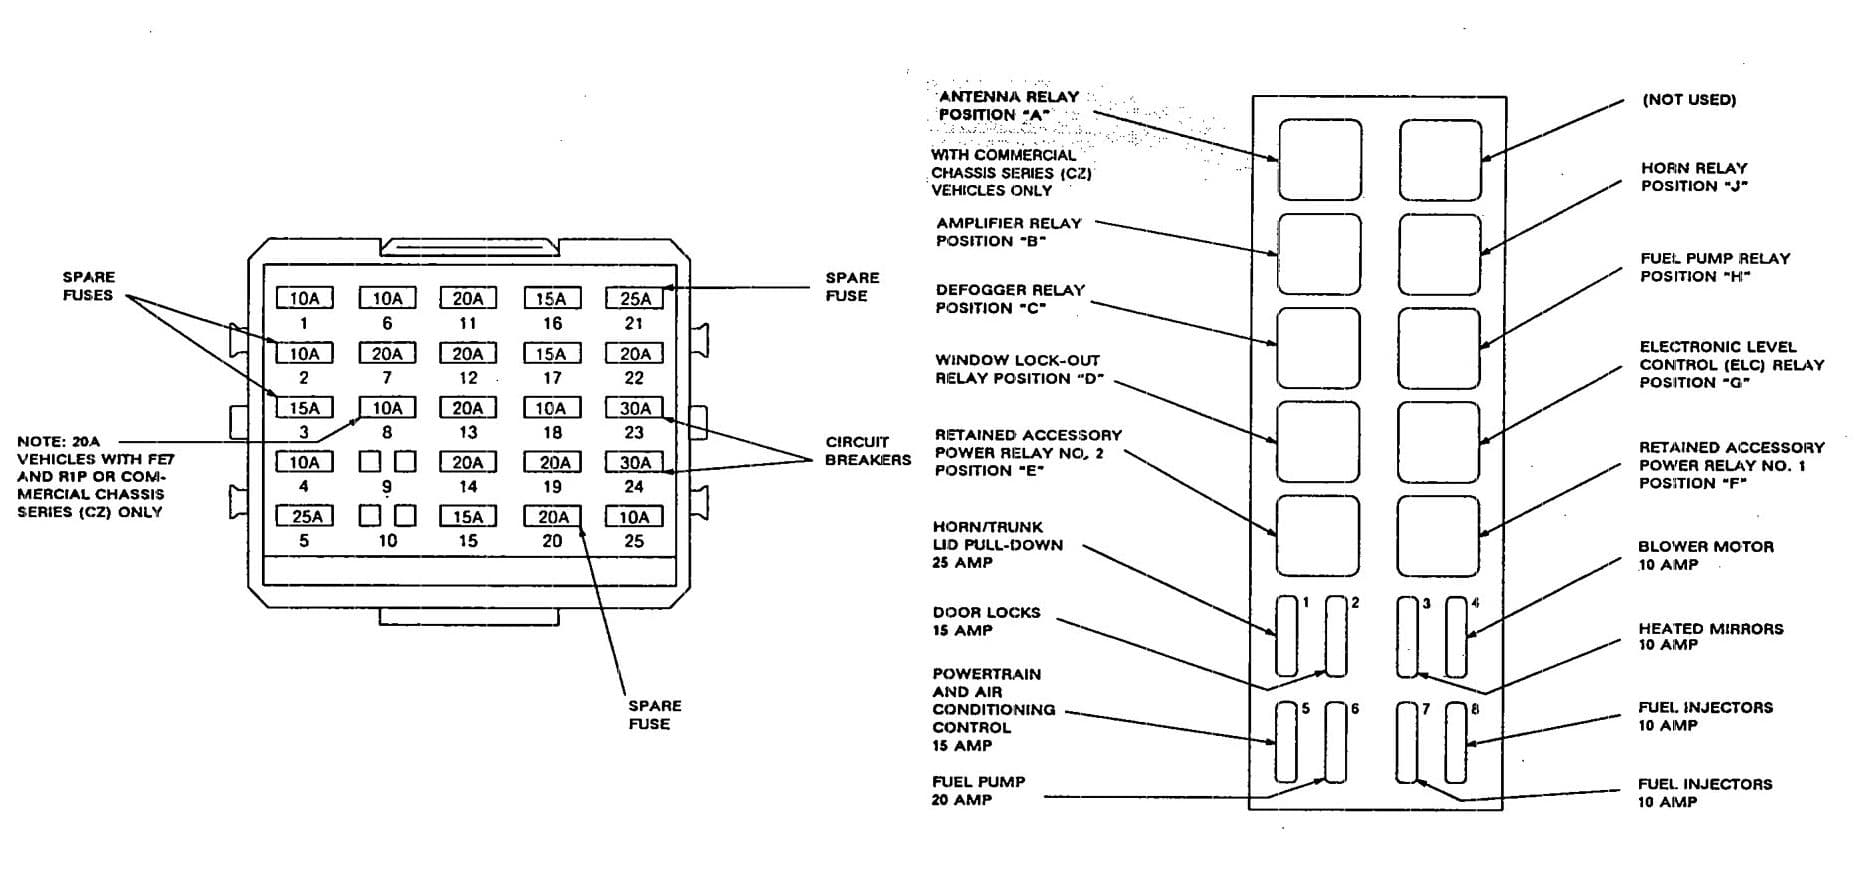 Cadillac Commercial Chassis – fuse box diagram